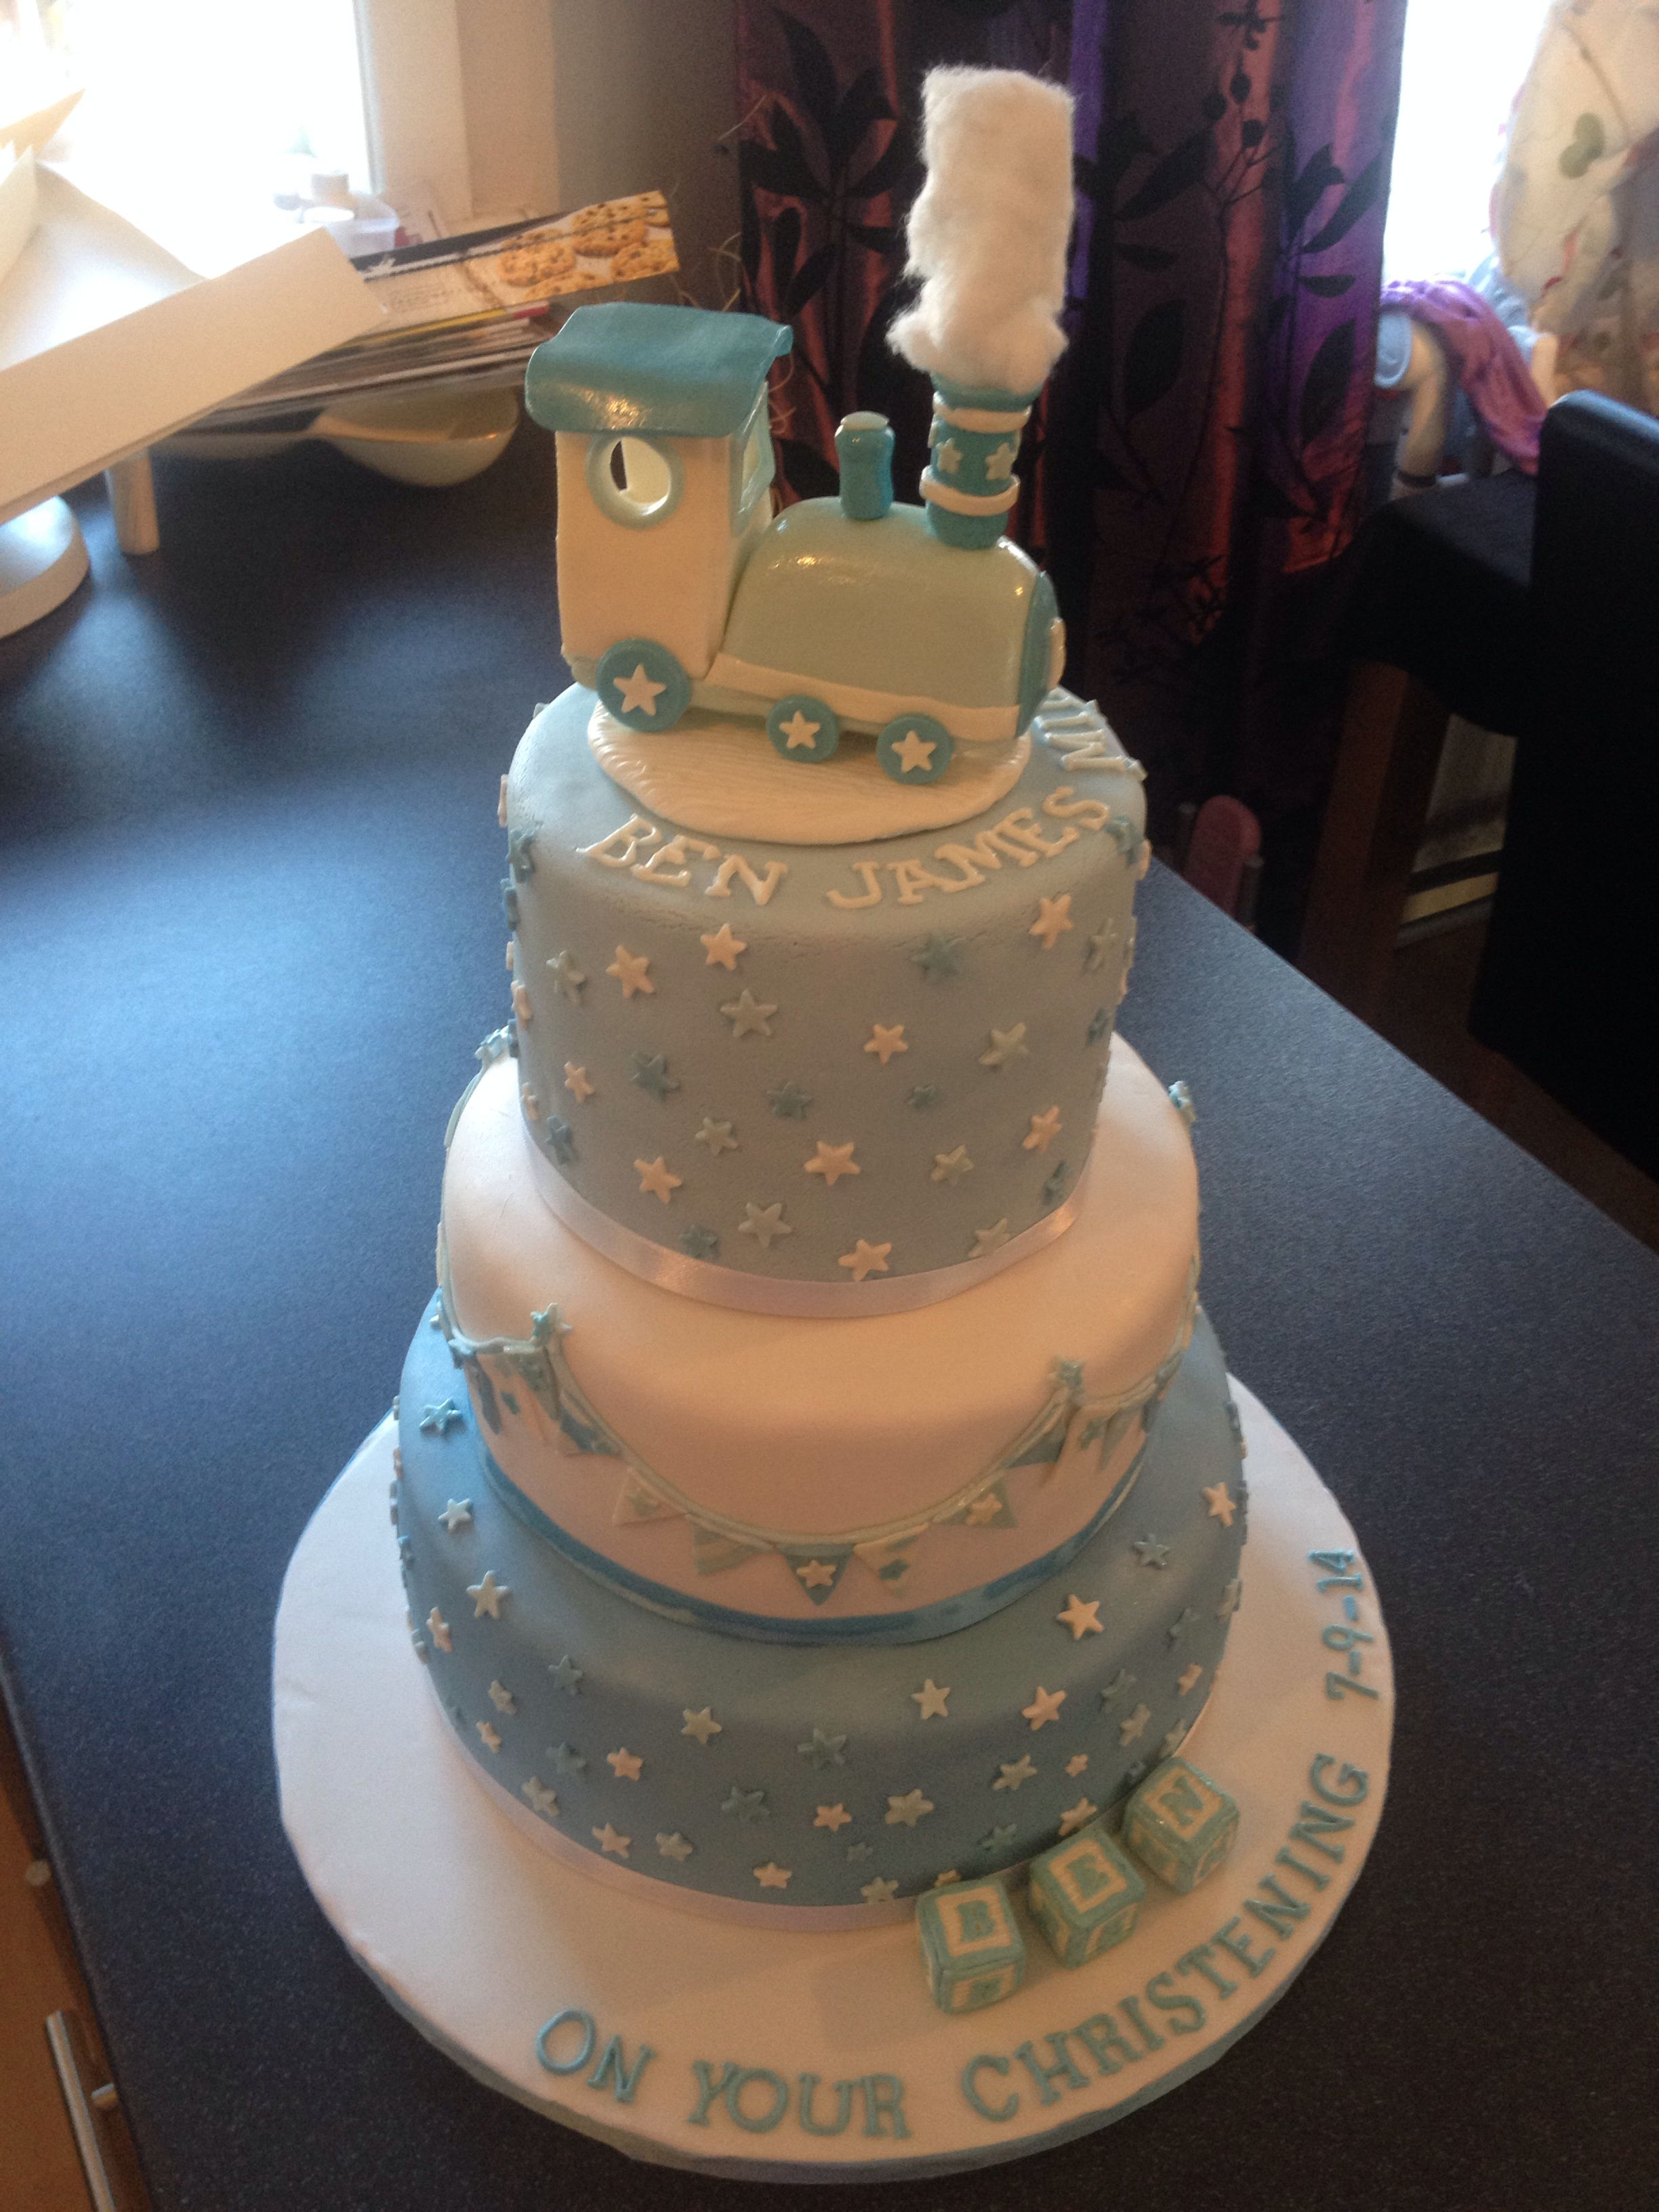 Christening Baby Boy 1st Birthday Pale Blue And White Cake 3 Layers With Train Building Blocks Name Bunting Stars Love It